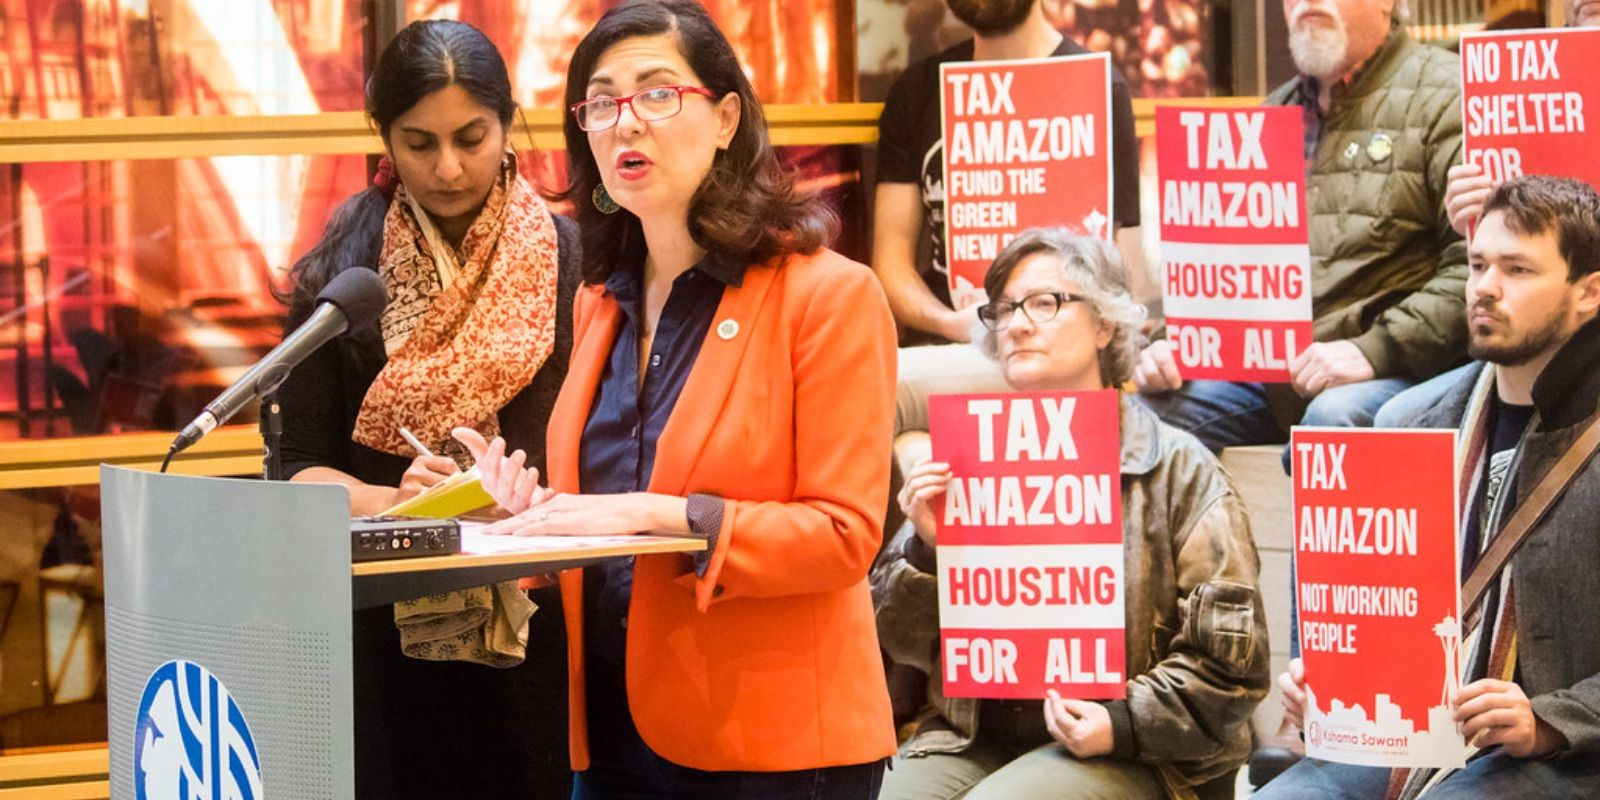 Seattle City Council bypasses process to funnel tax payer dollars to political allies